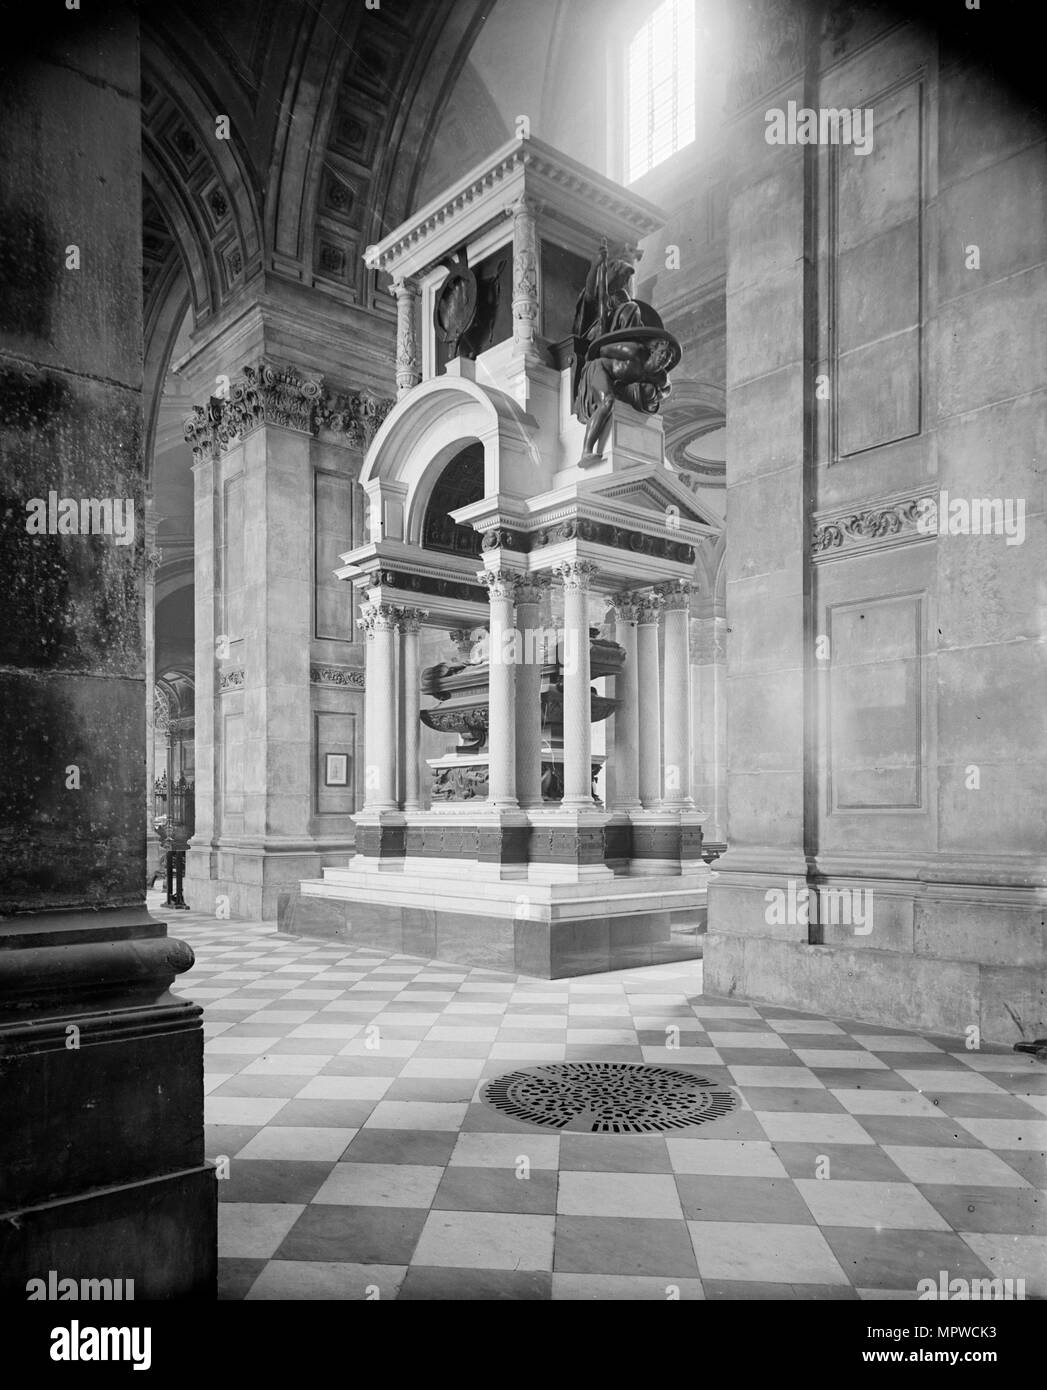 Wellington Monument, St Paul's Cathedral, City of London, c1870-c1900. Artist: York & Son. - Stock Image